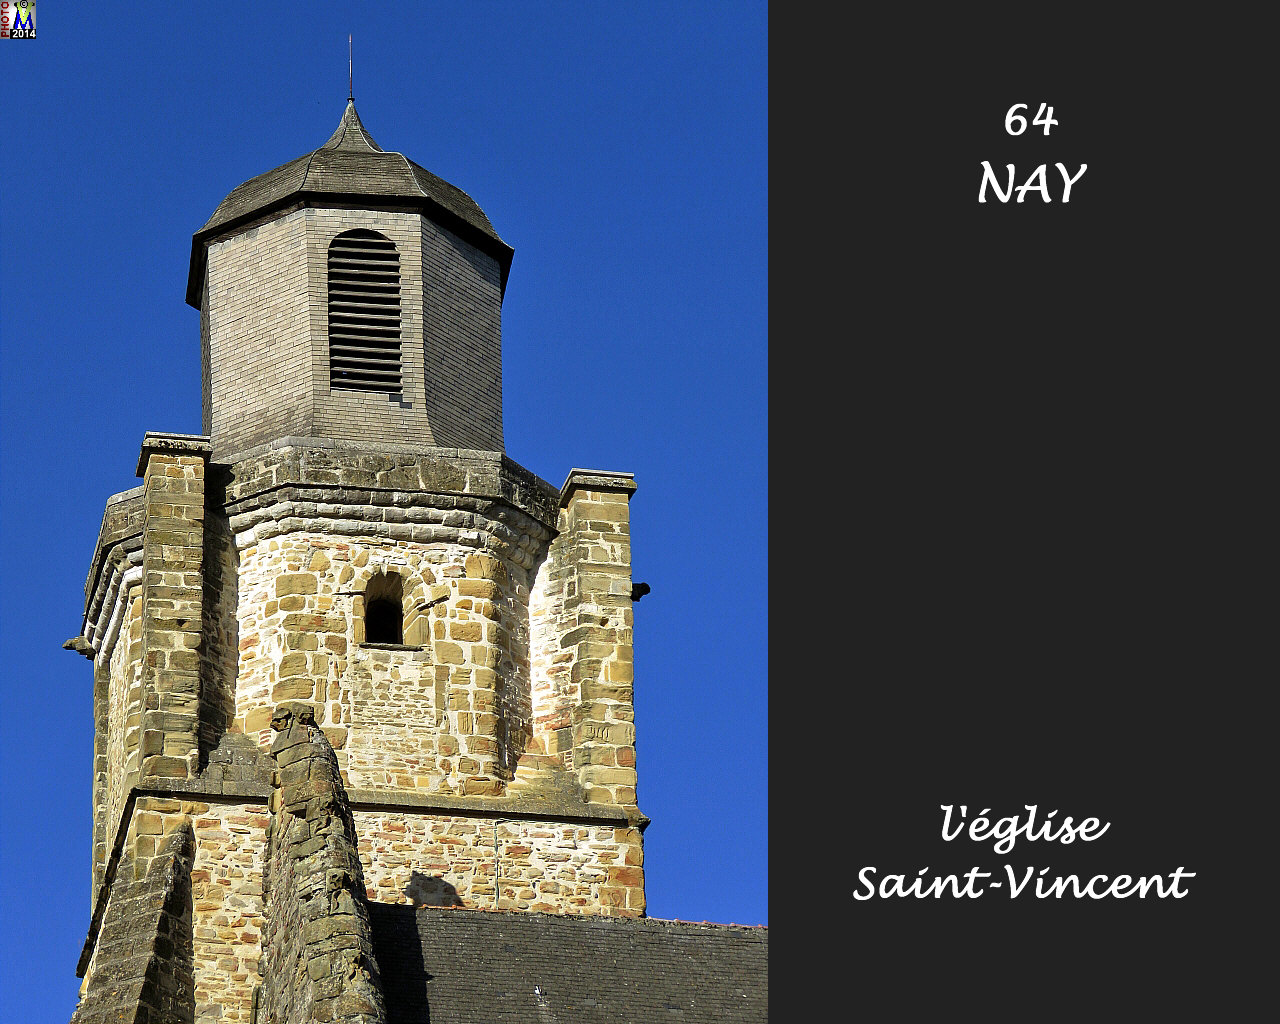 64NAY_eglise_104.jpg